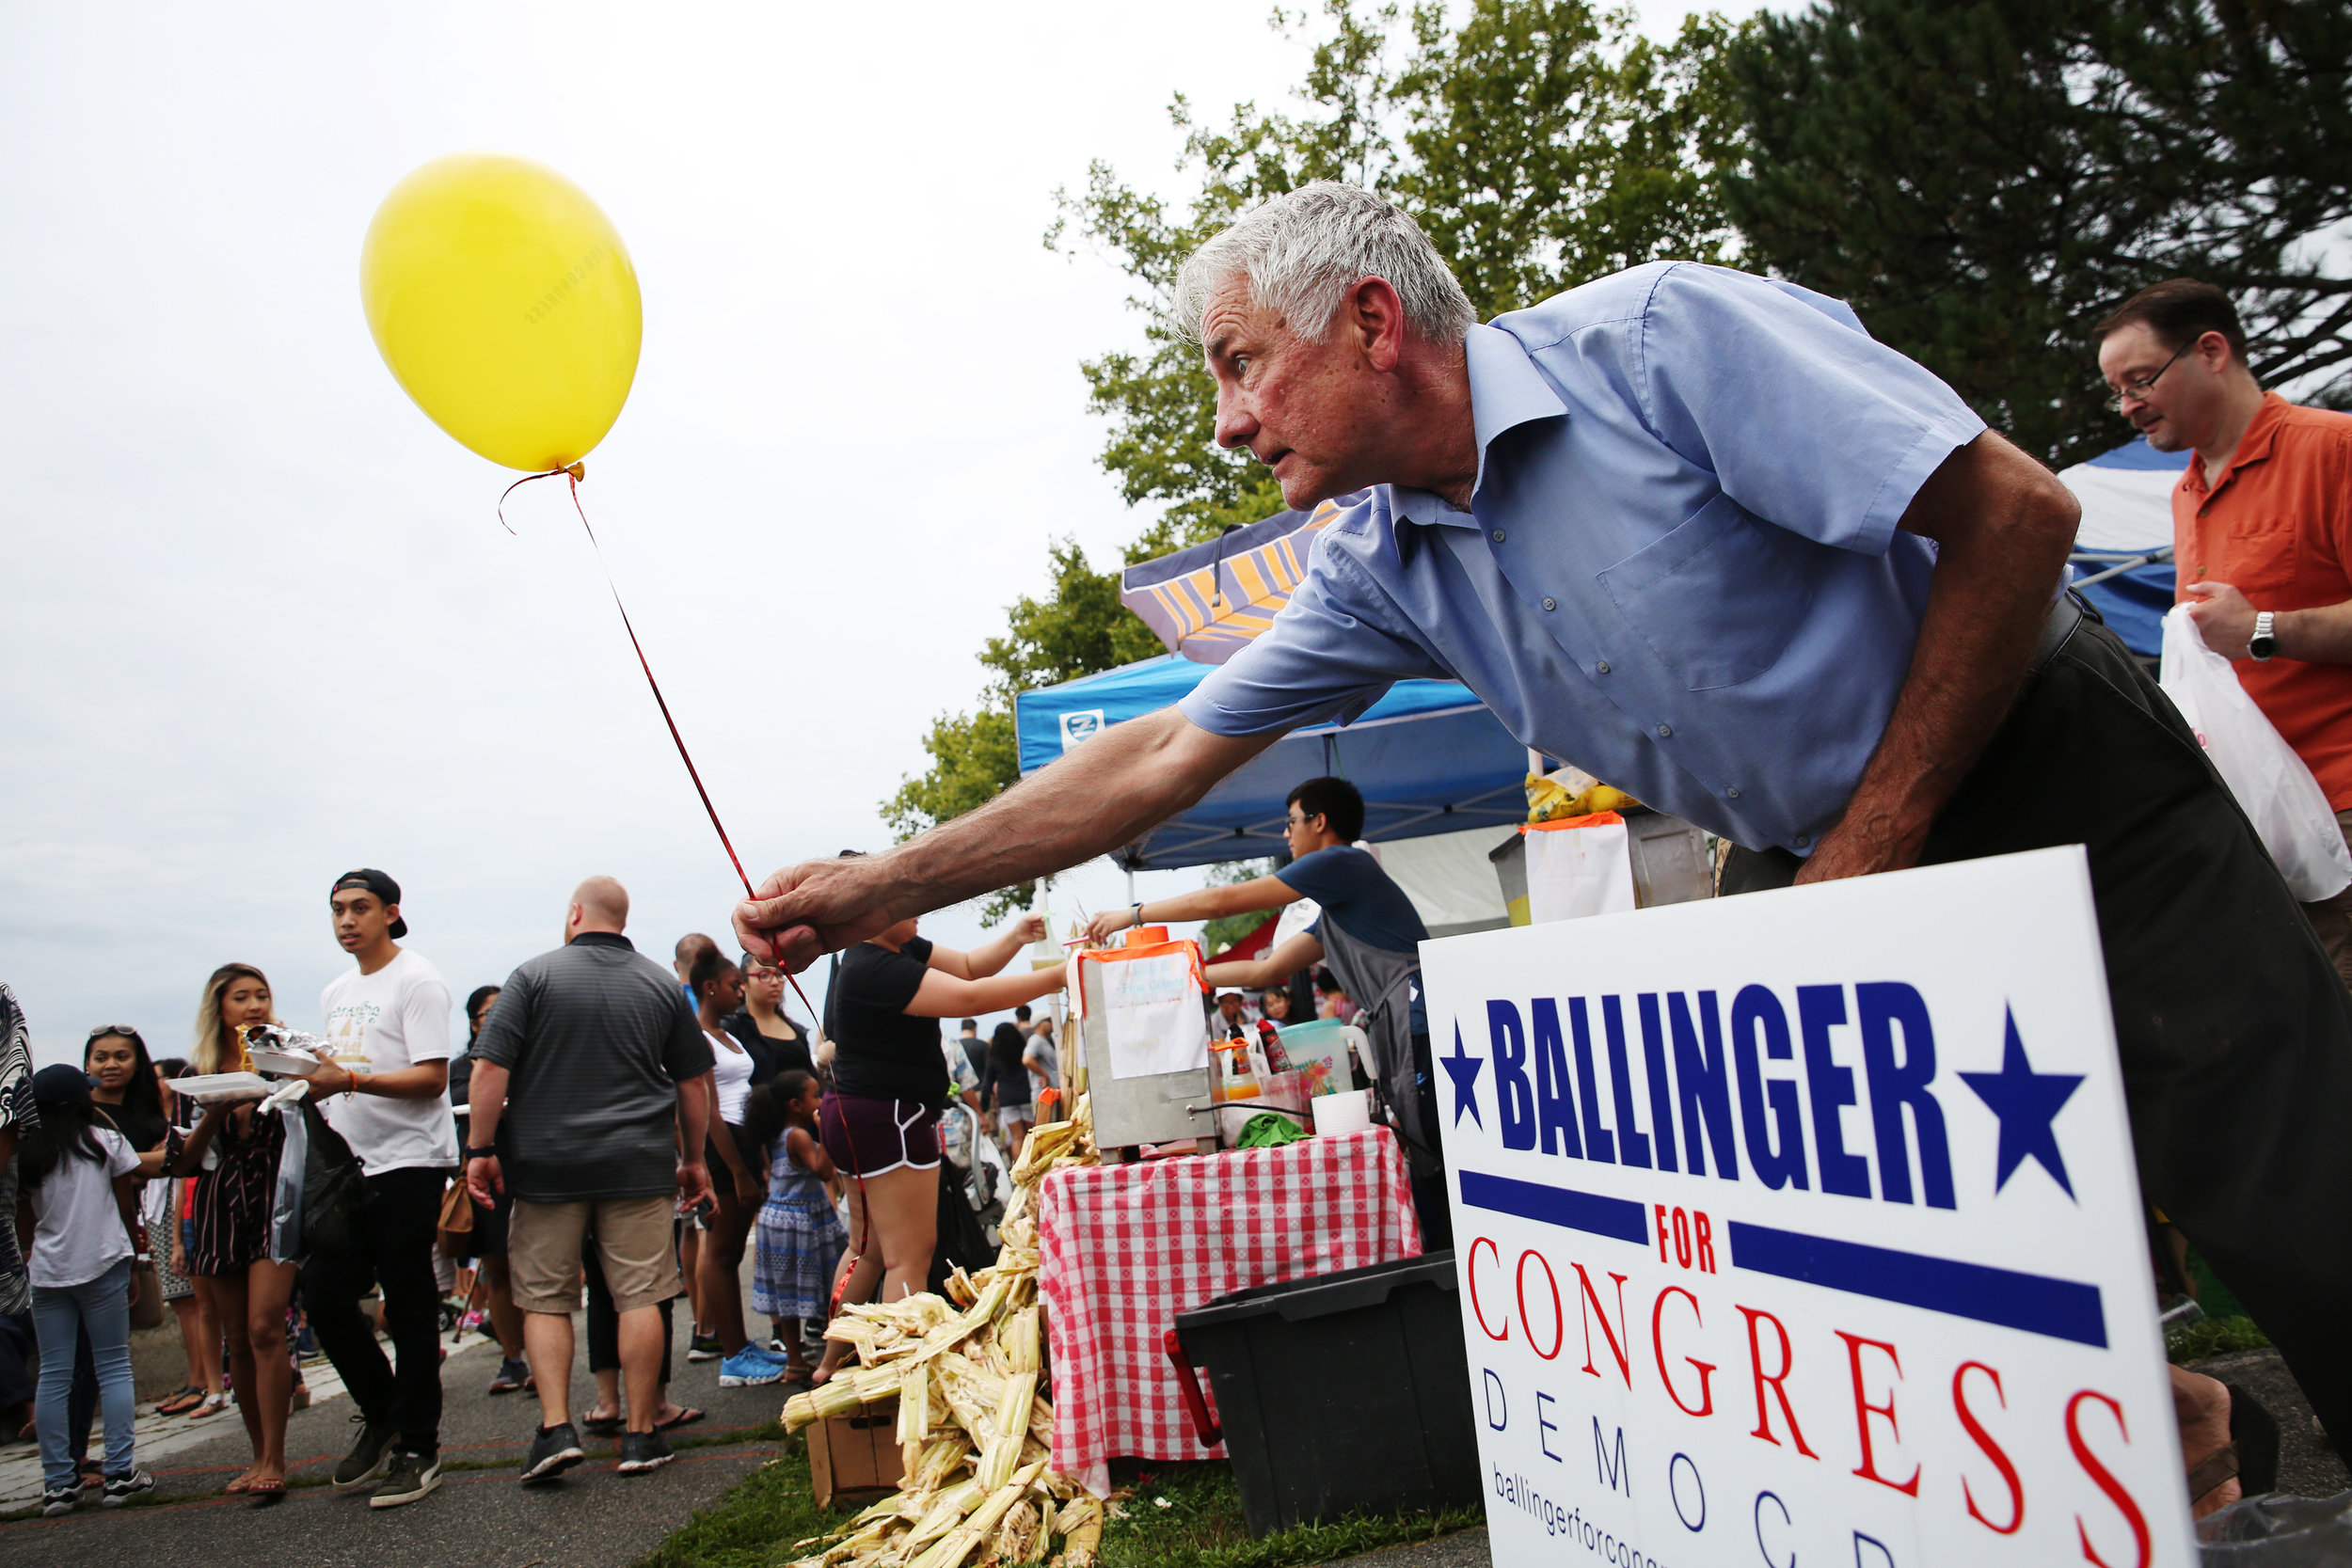 Labor advocate Jeff Ballinger hands out balloons to people at the Lowell Southeast Asian Water Festival. Ballinger is one of 10 democratic candidates running to represent the people of Massachusetts' 3rd District in U.S. Congress.